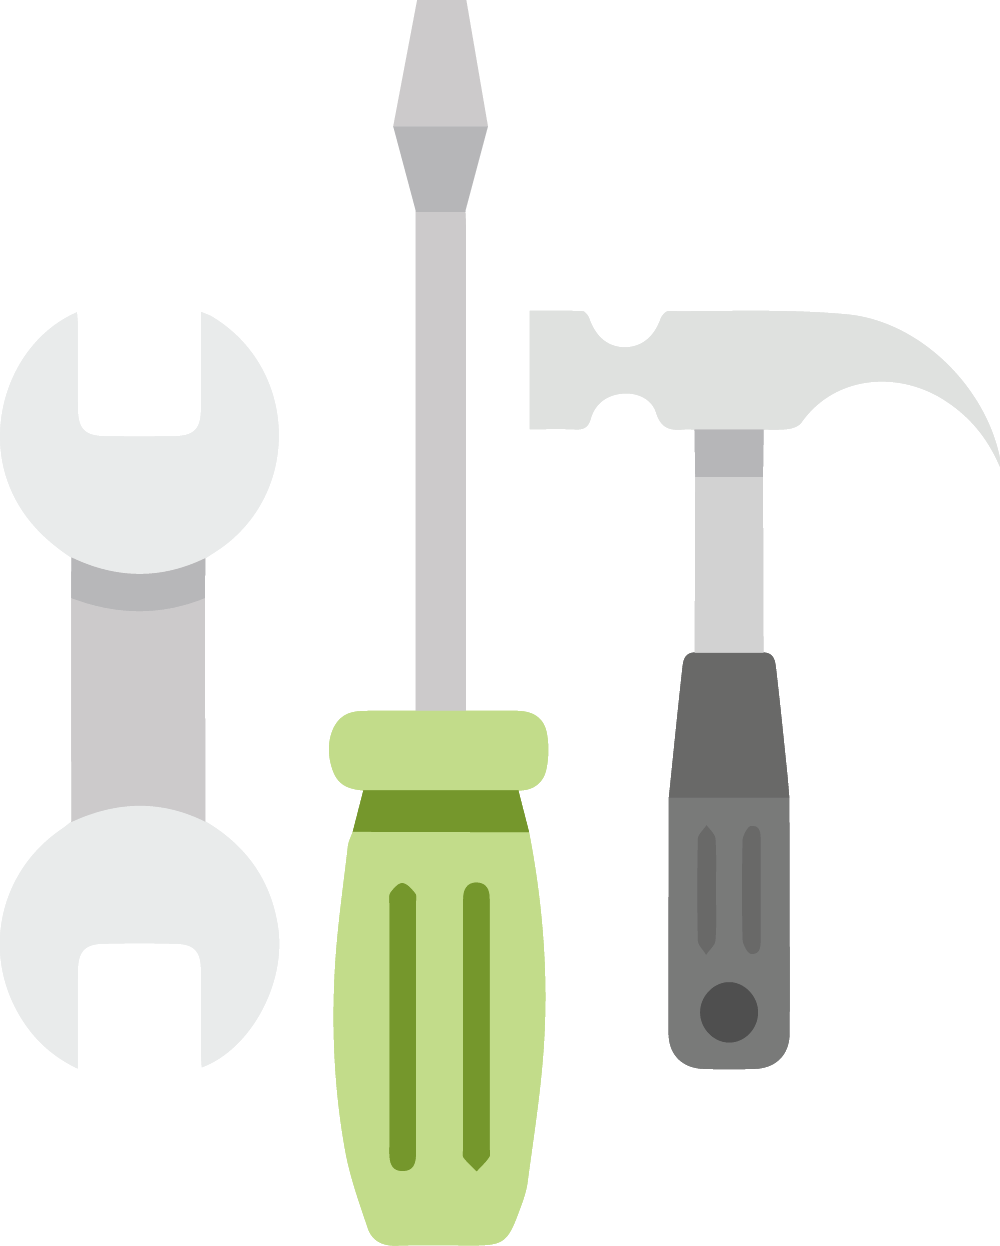 Three tools such as a hammer and screw for our Equip approach in our four E's change management procedure